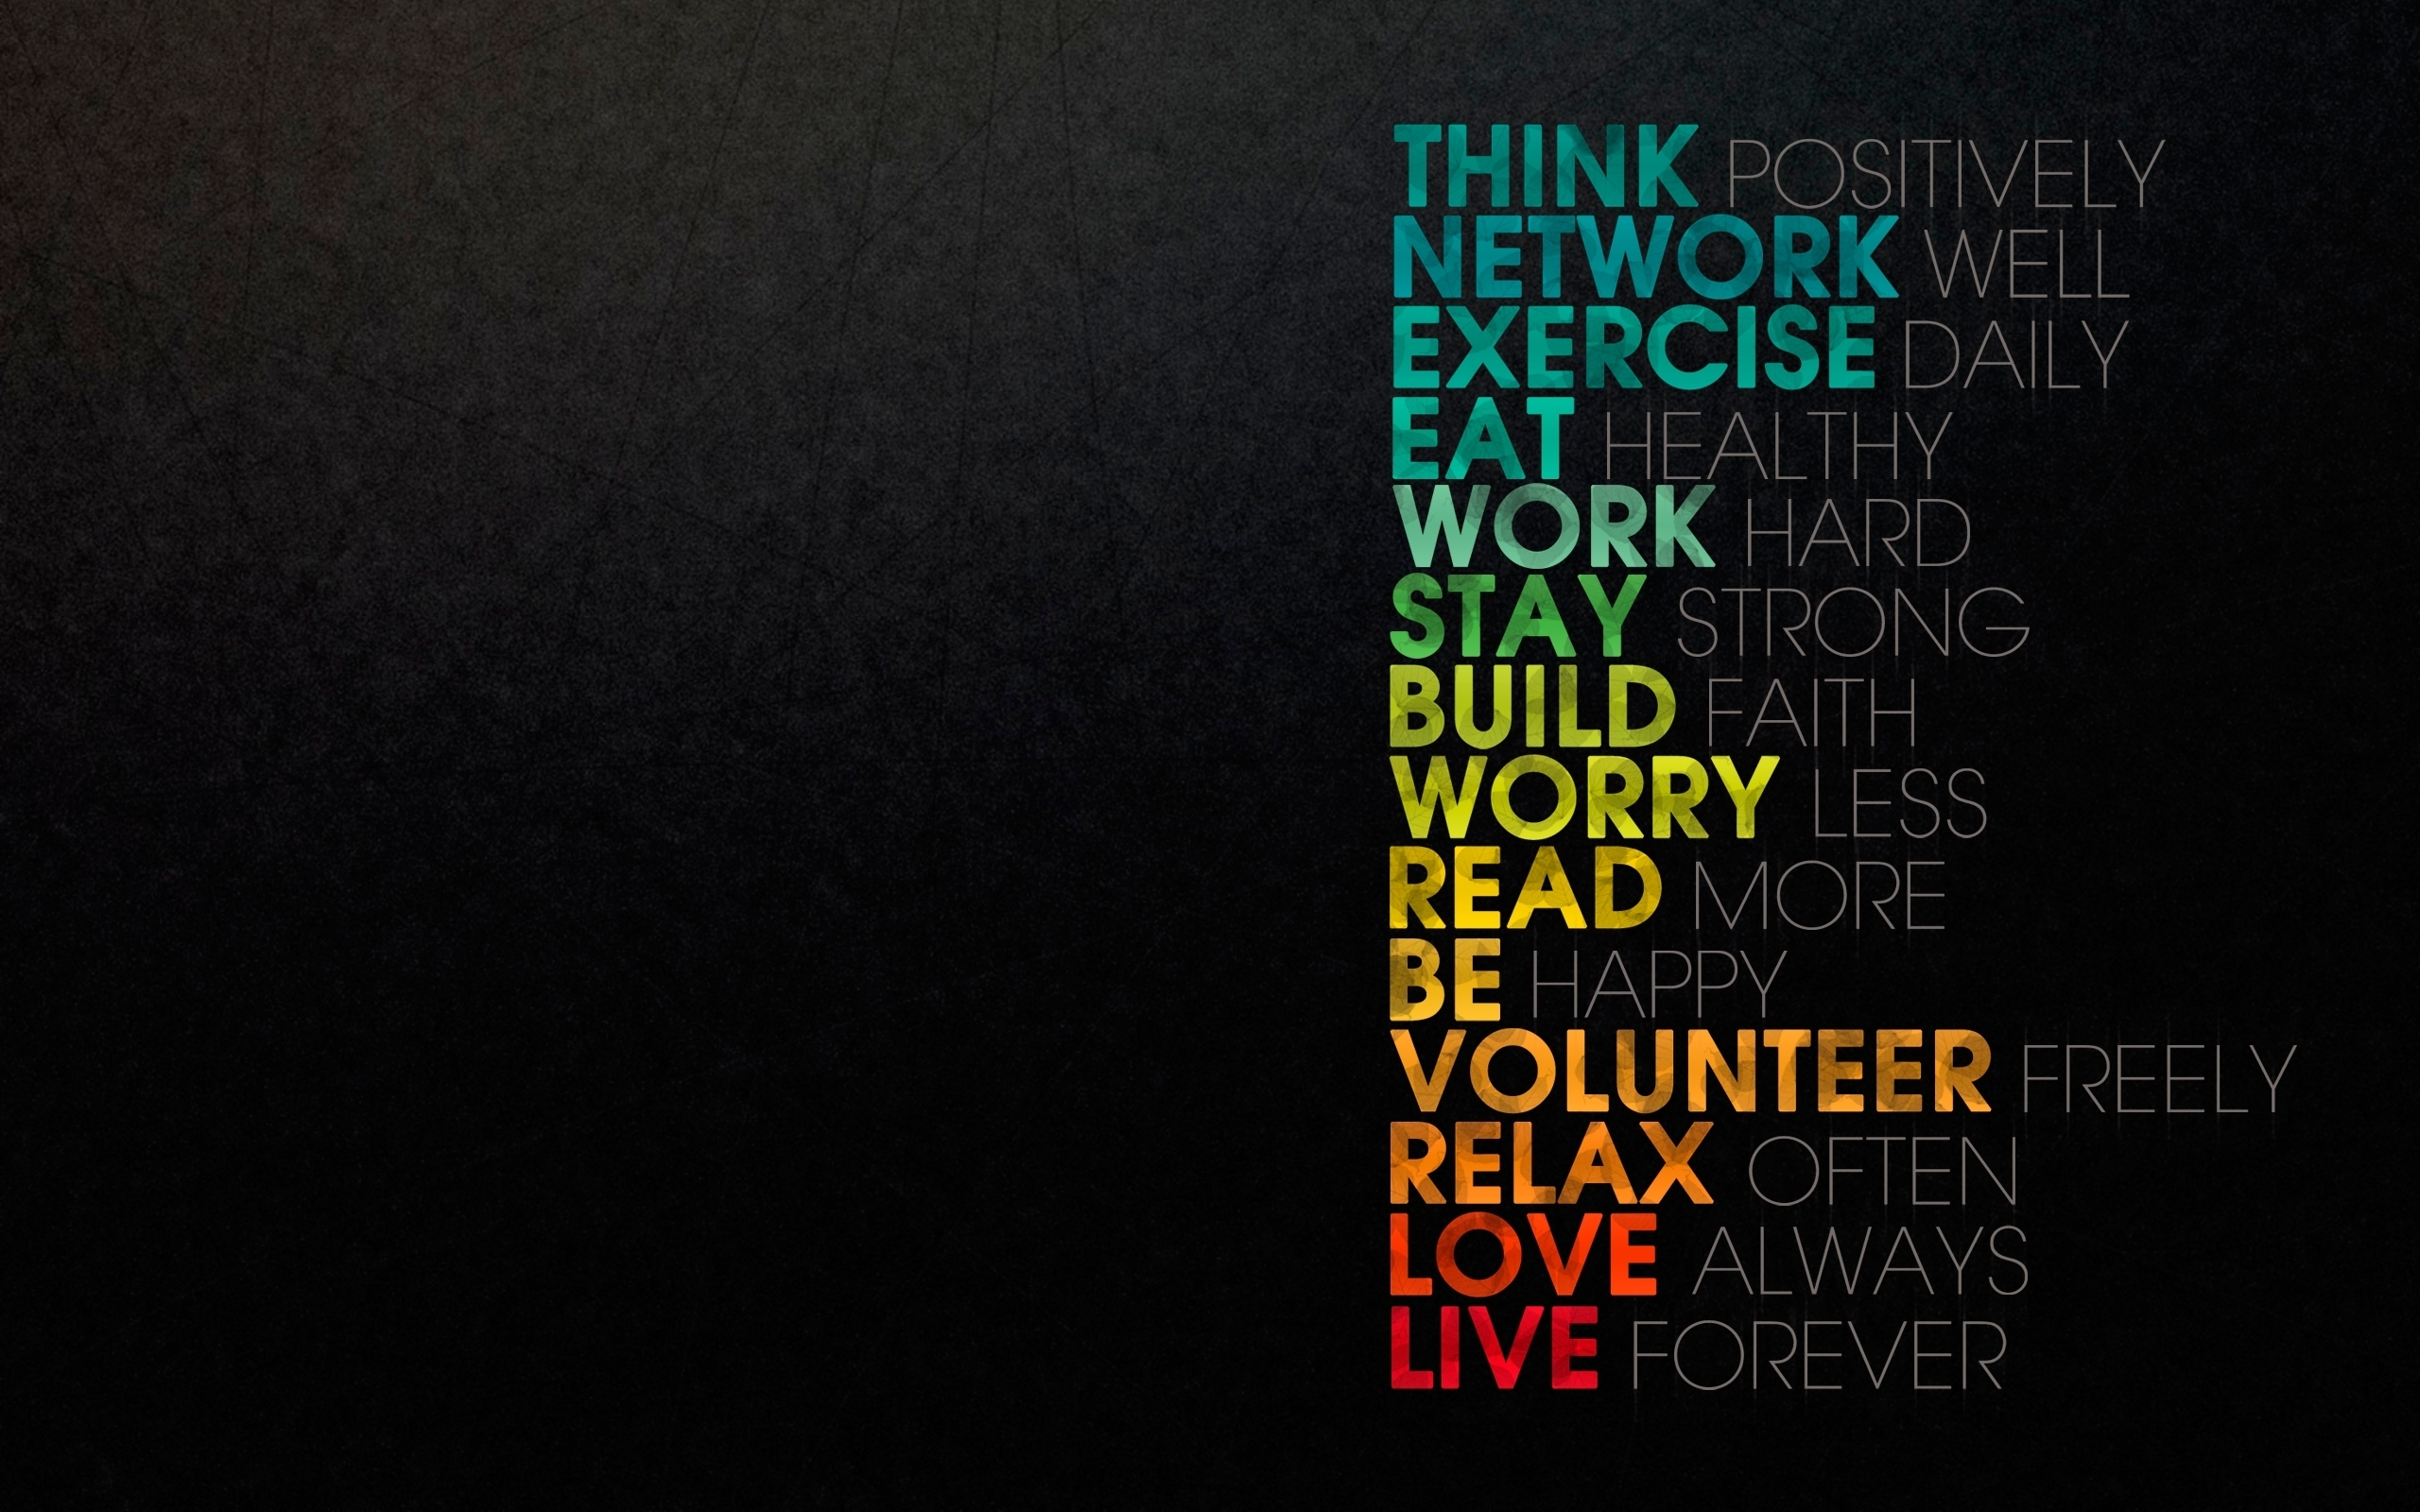 Motivational Computer Wallpapers Desktop Backgrounds 2560x1600 ID 2560x1600